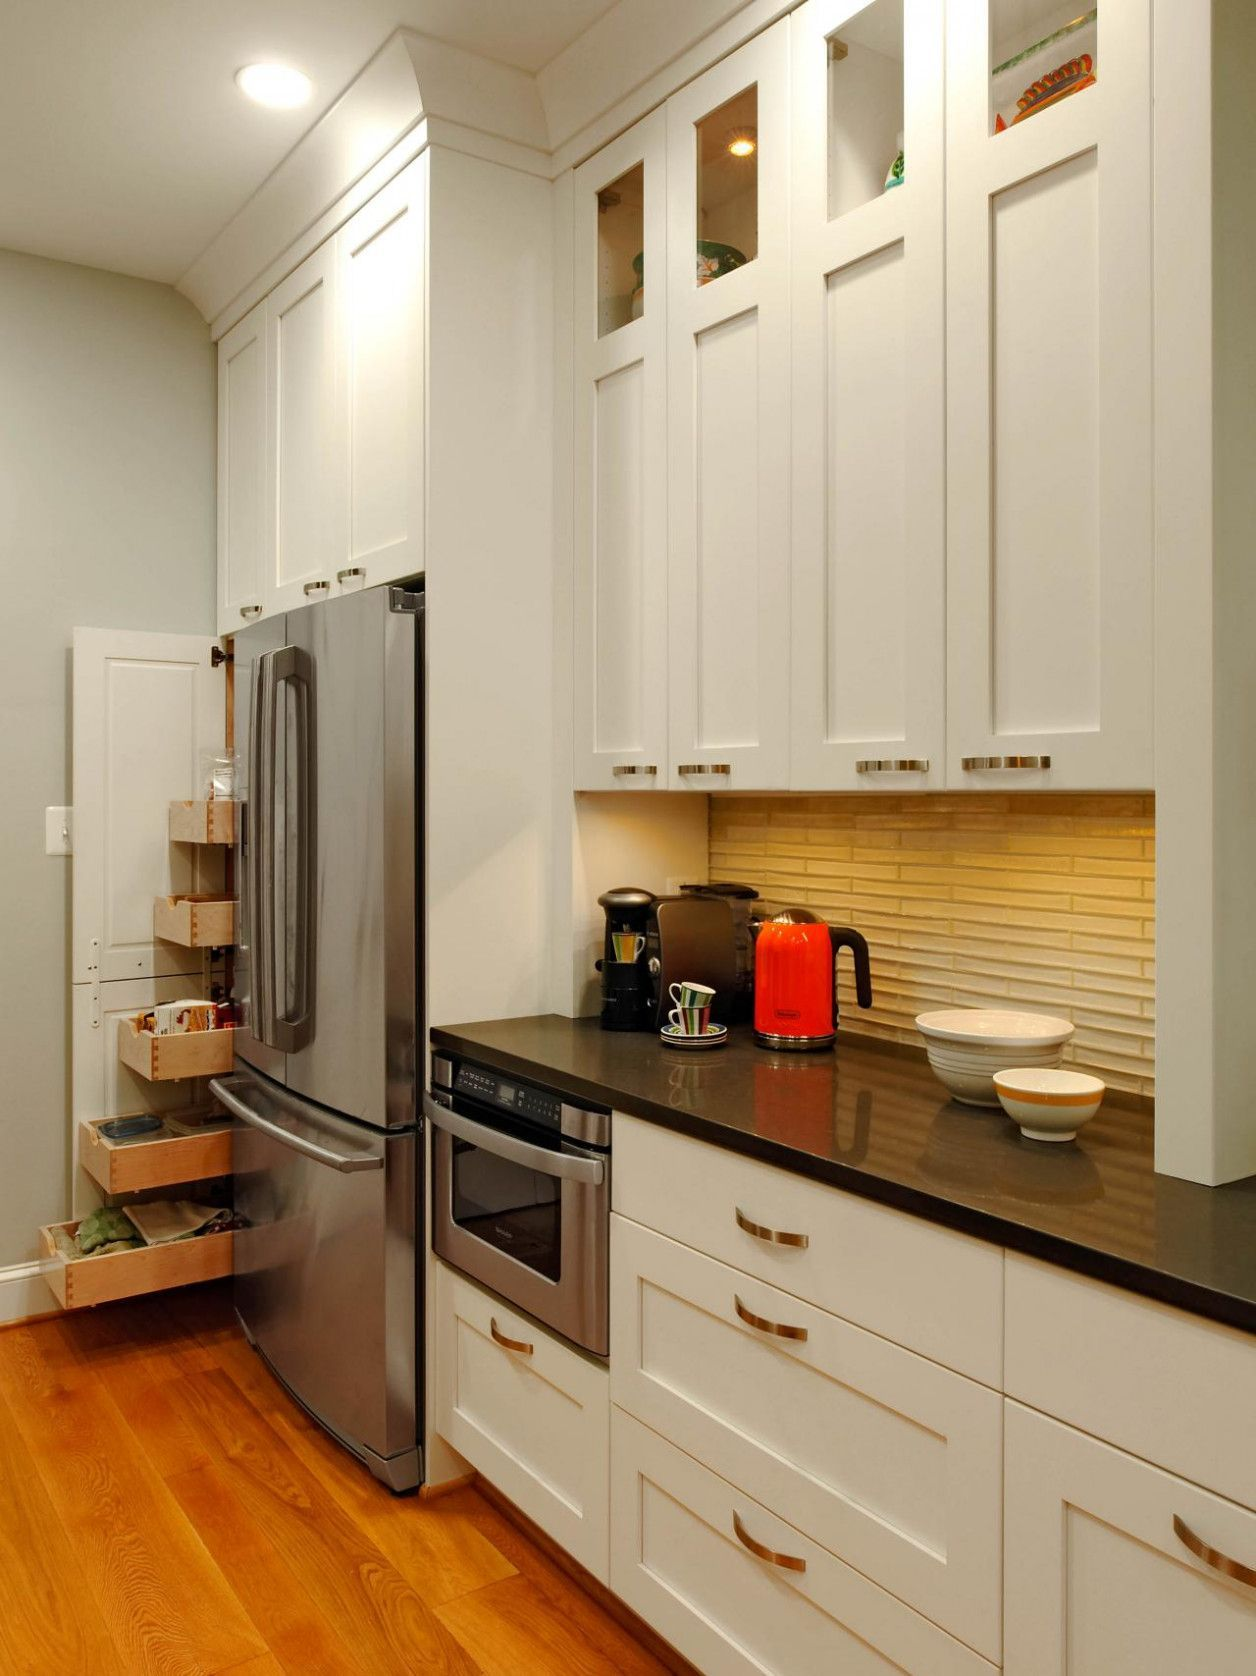 2018 Find Cheap Kitchen Cabinets - Kitchen Decorating Ideas themes ...